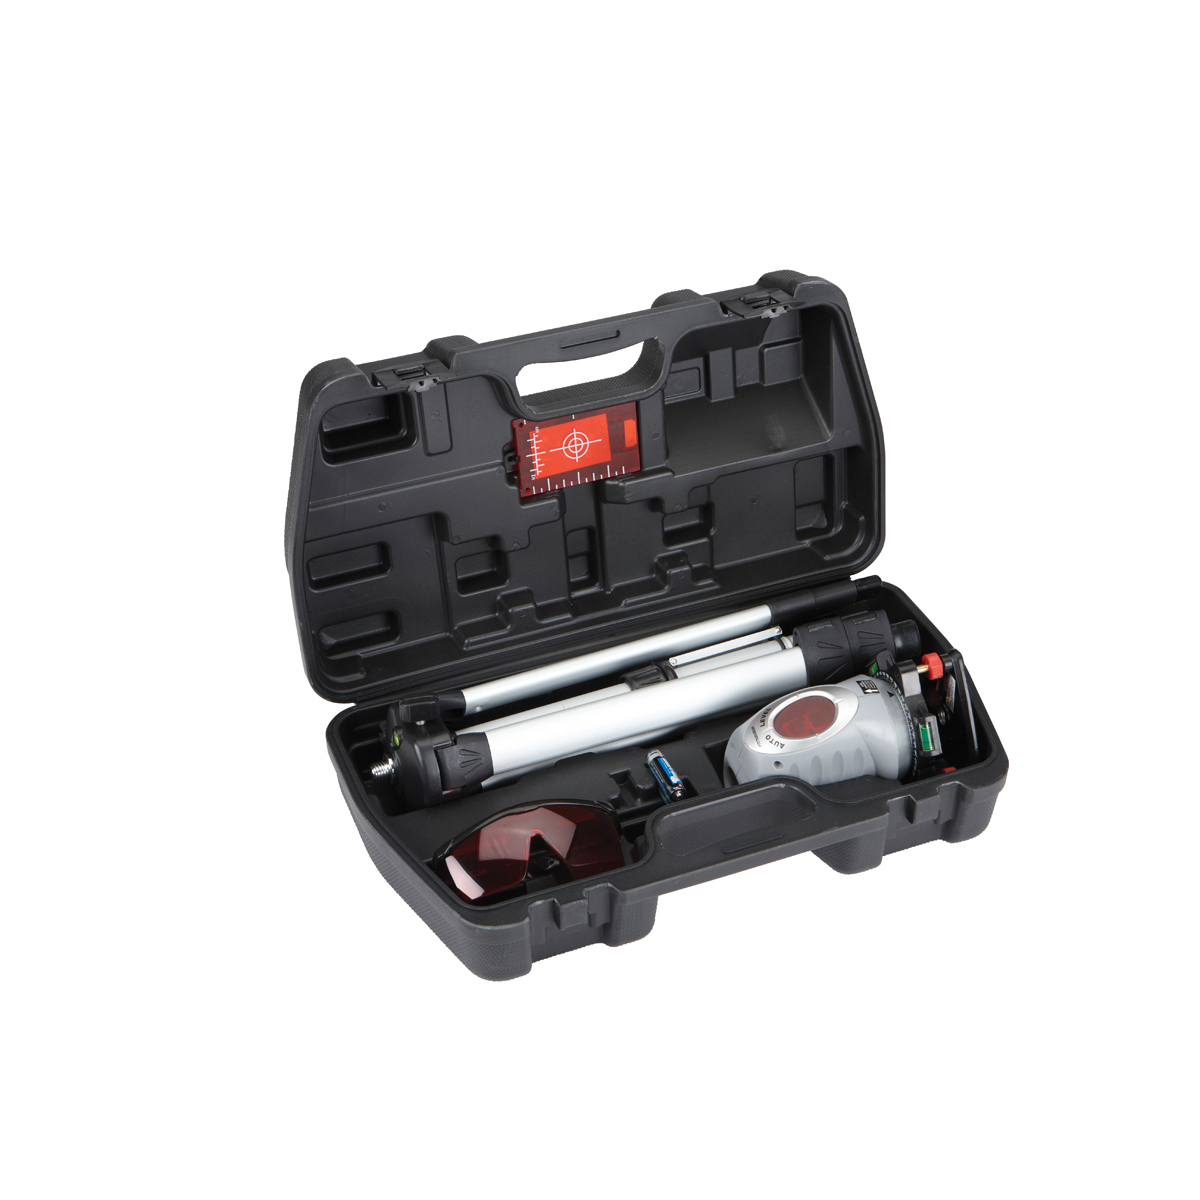 Self Leveling Laser Level Kit Bosch Gll 3 15 Mini